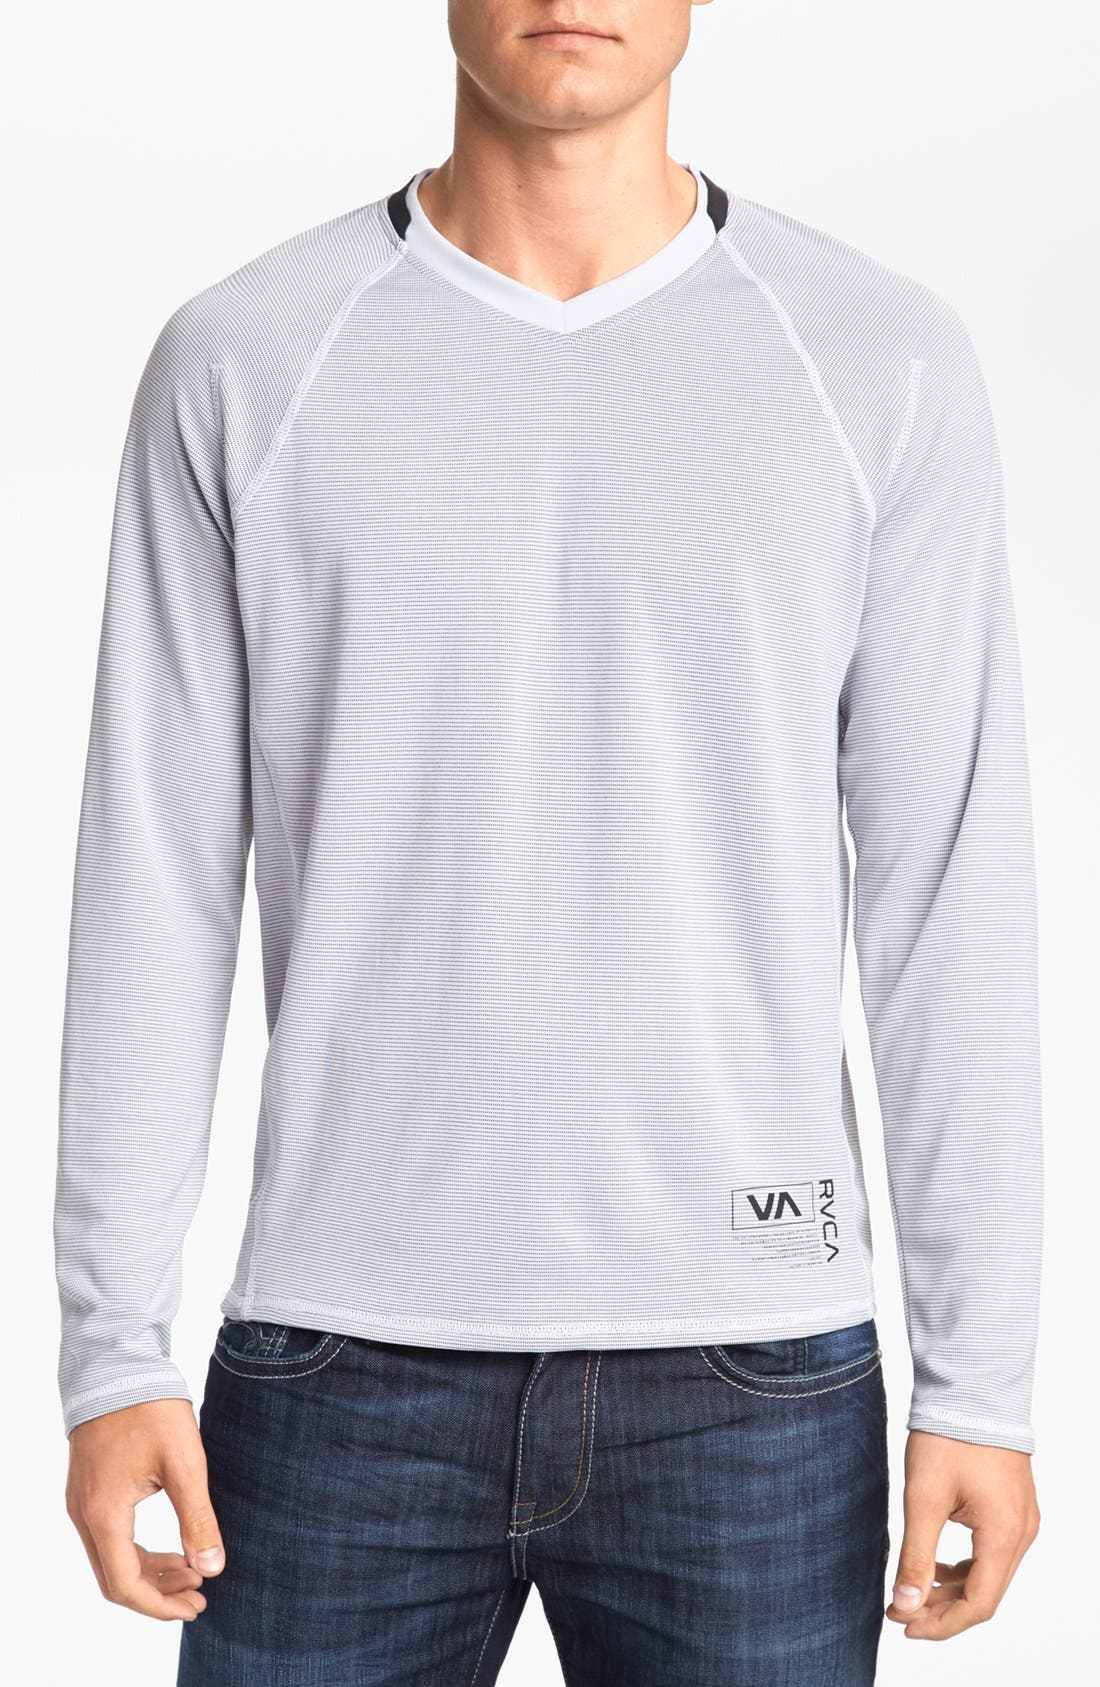 Main Image - RVCA 'Fraction' Long Sleeve V-Neck T-Shirt